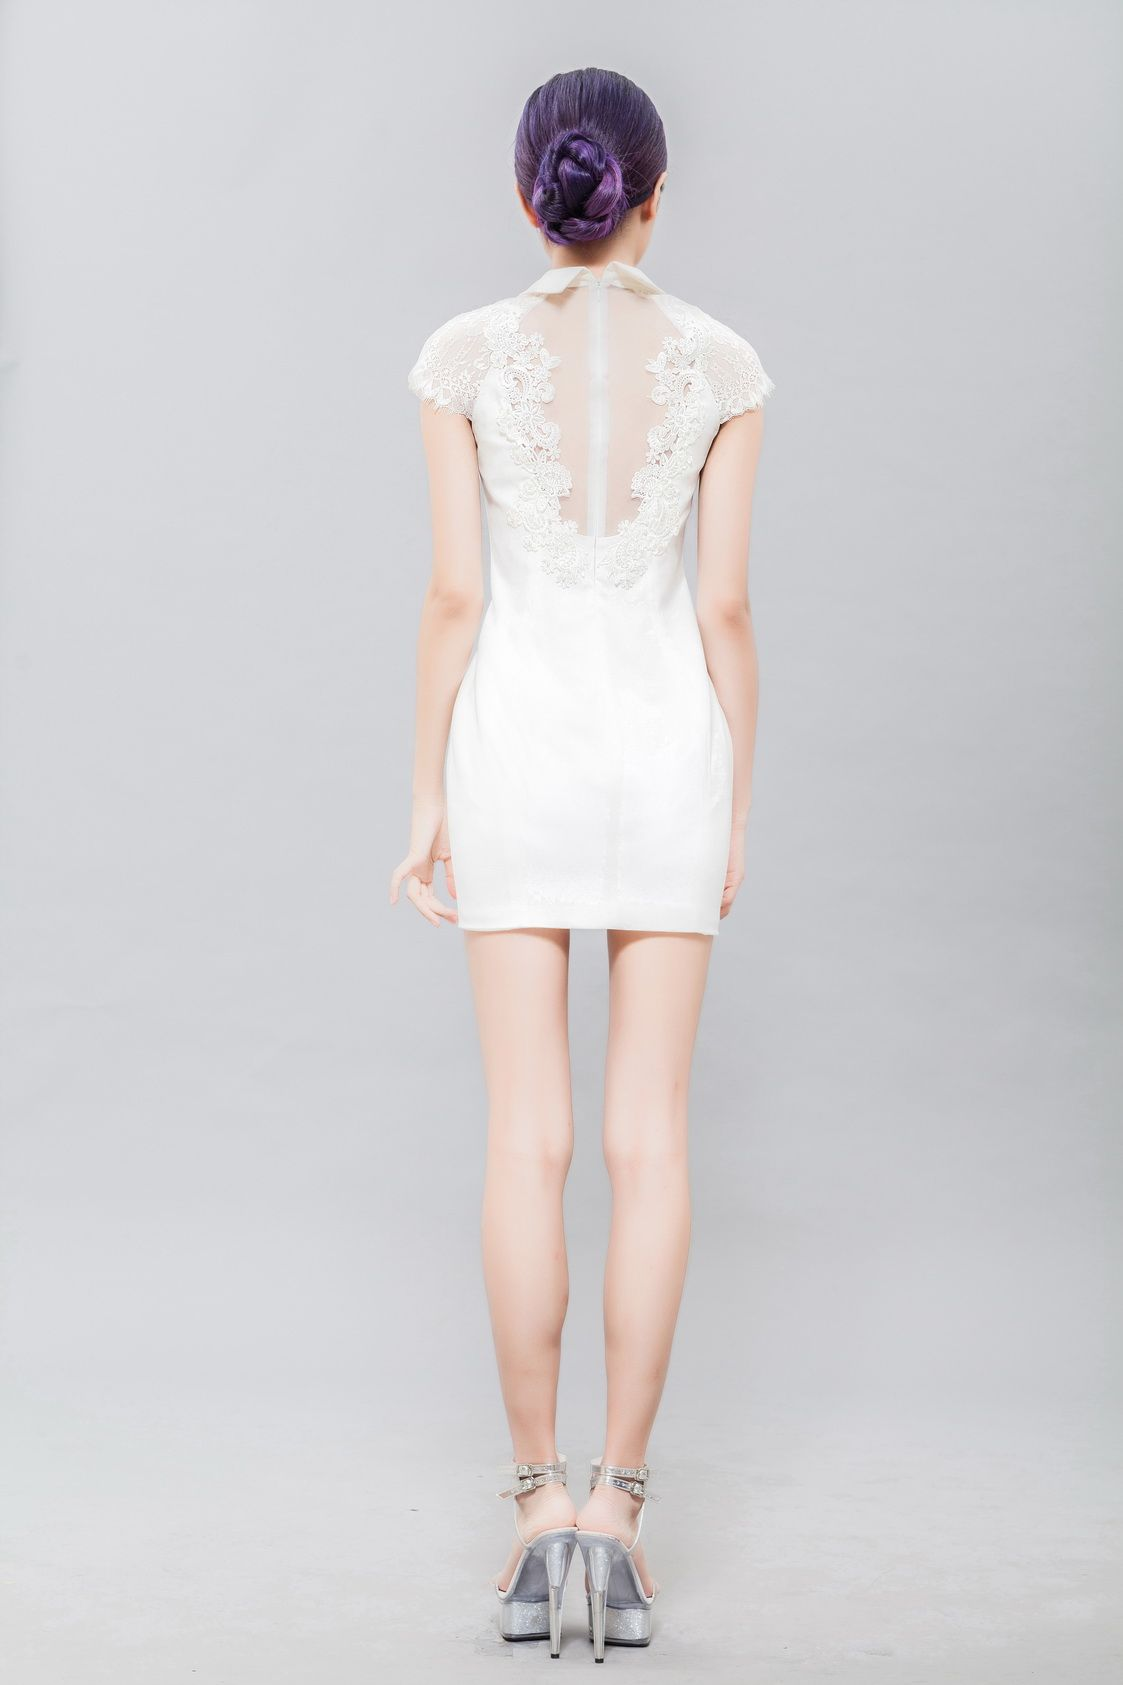 White simple dress back custom dress not instock if you are